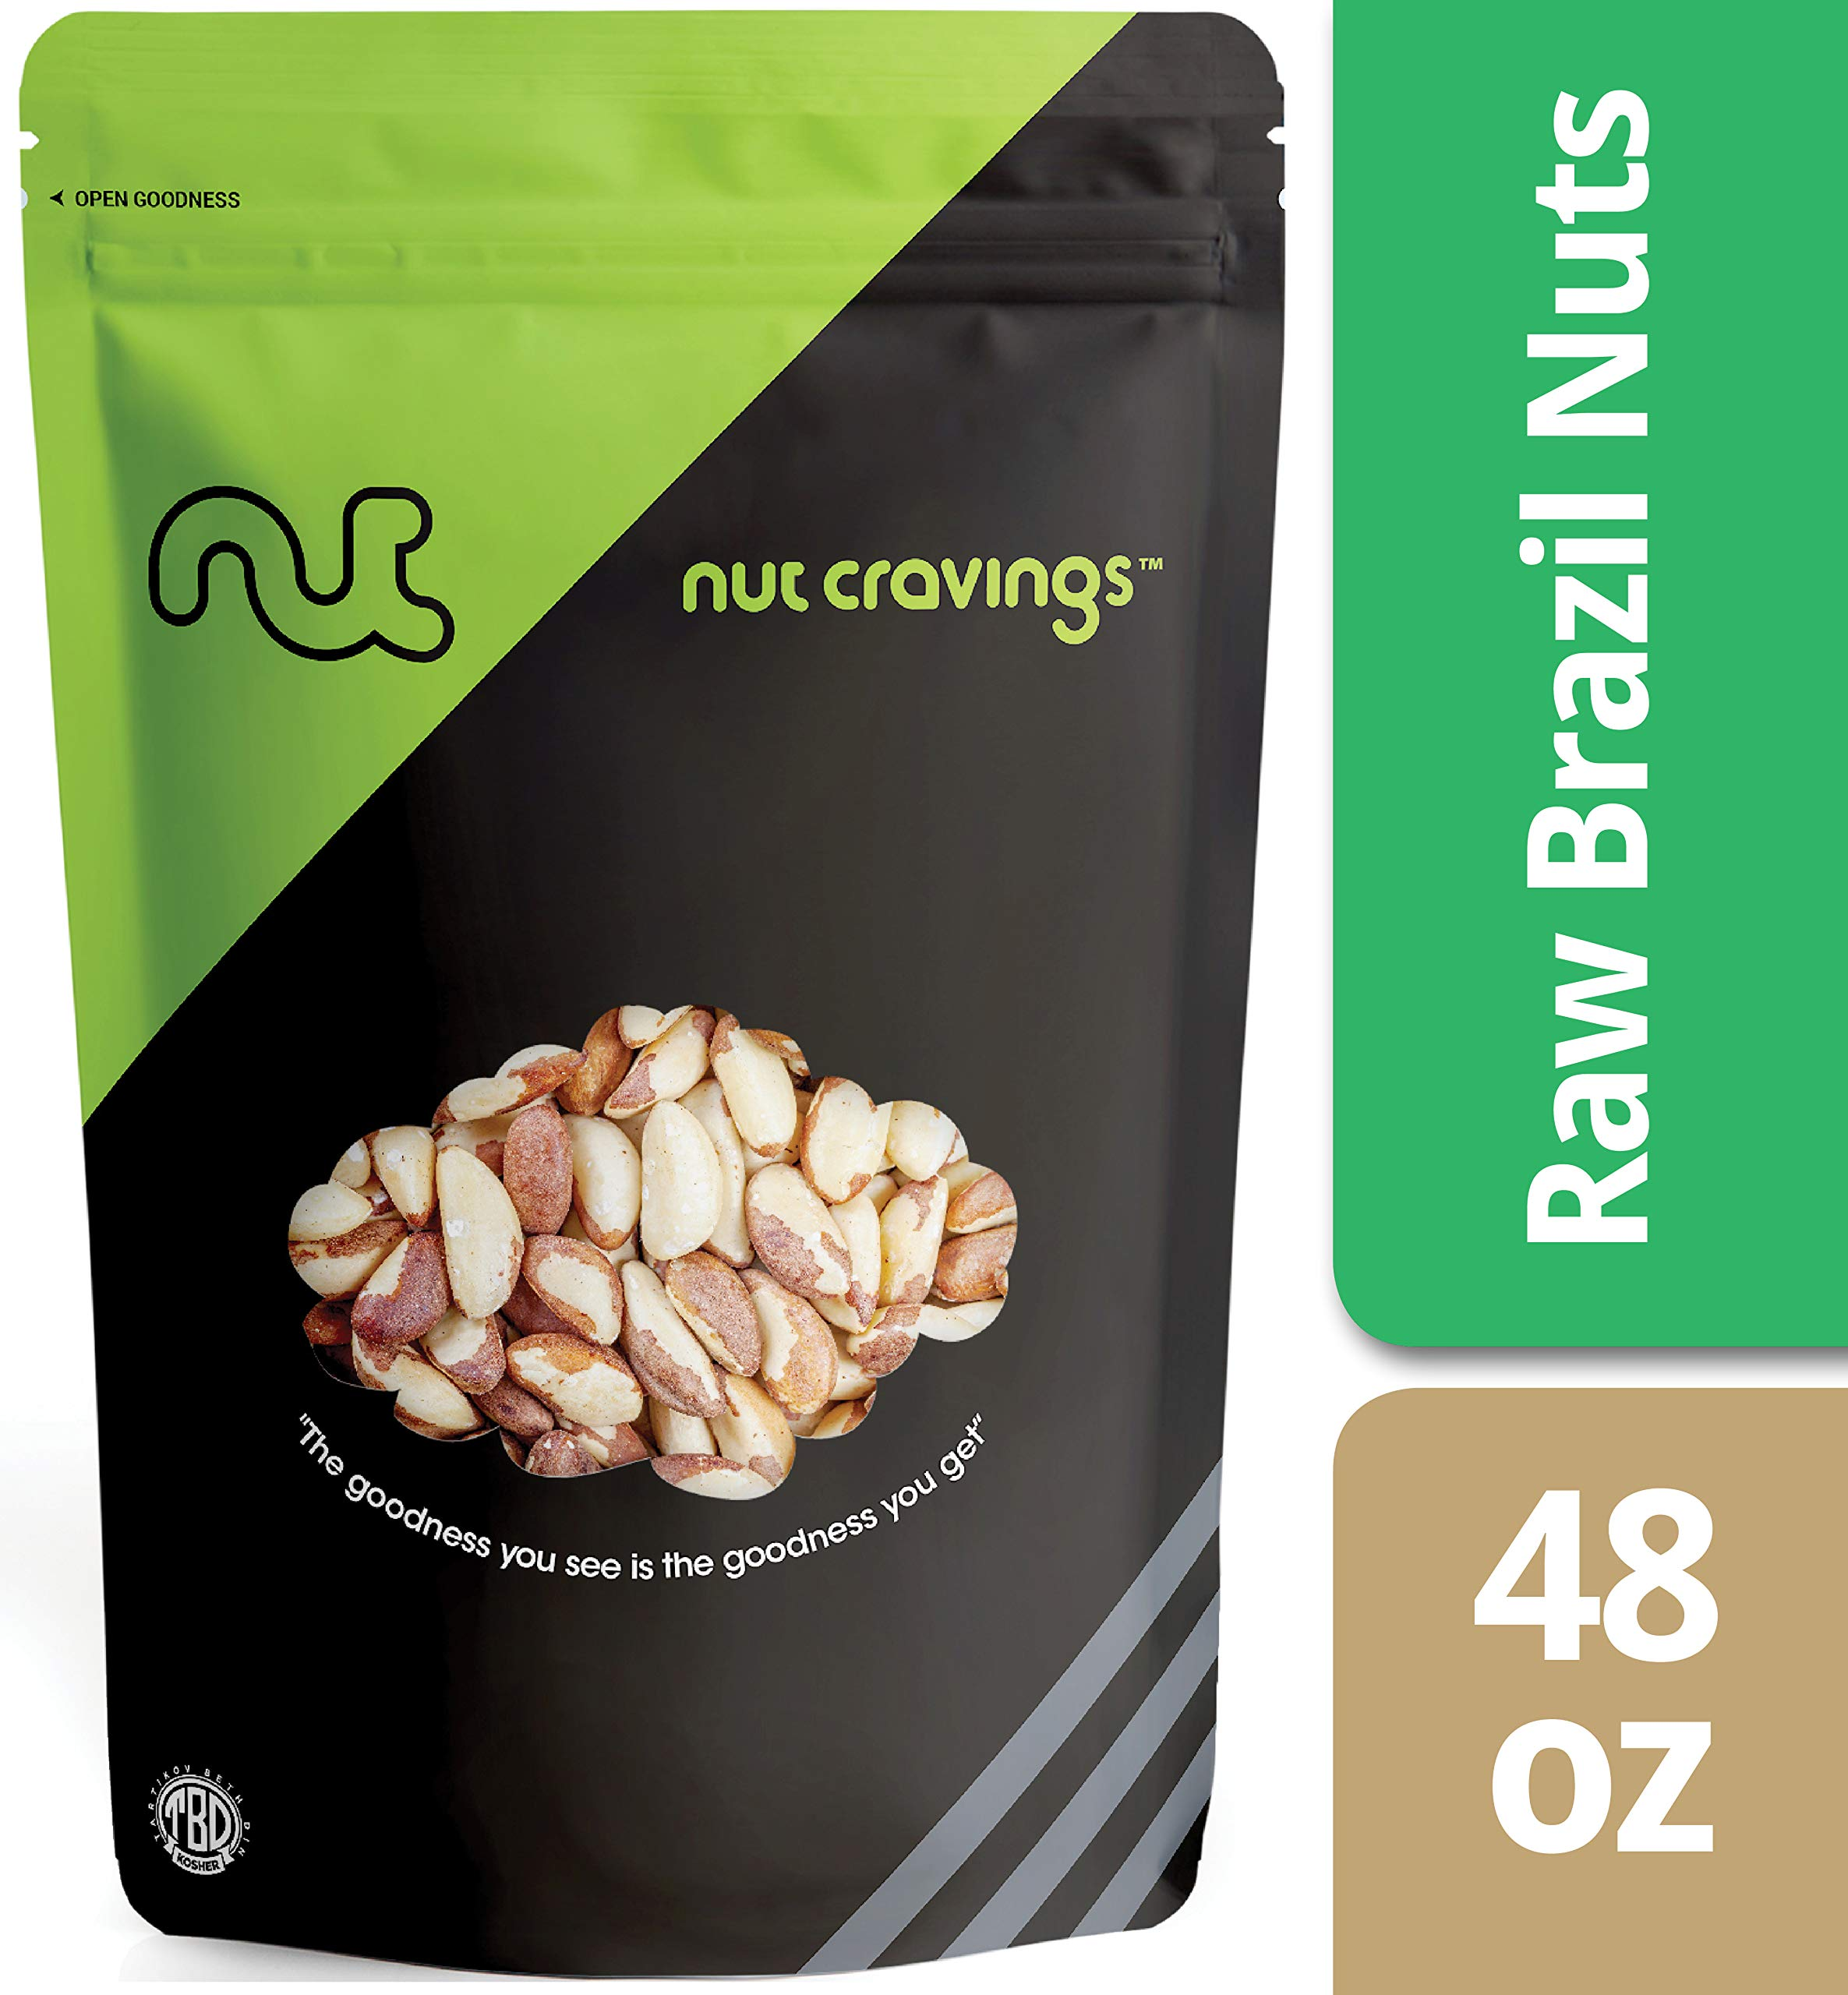 Nut Cravings Raw Compare To Organic Brazil Nuts (3 Pounds) – Whole, Unsalted, No Shell Brazilian Nuts – 48 Ounce by Nut Cravings (Image #1)